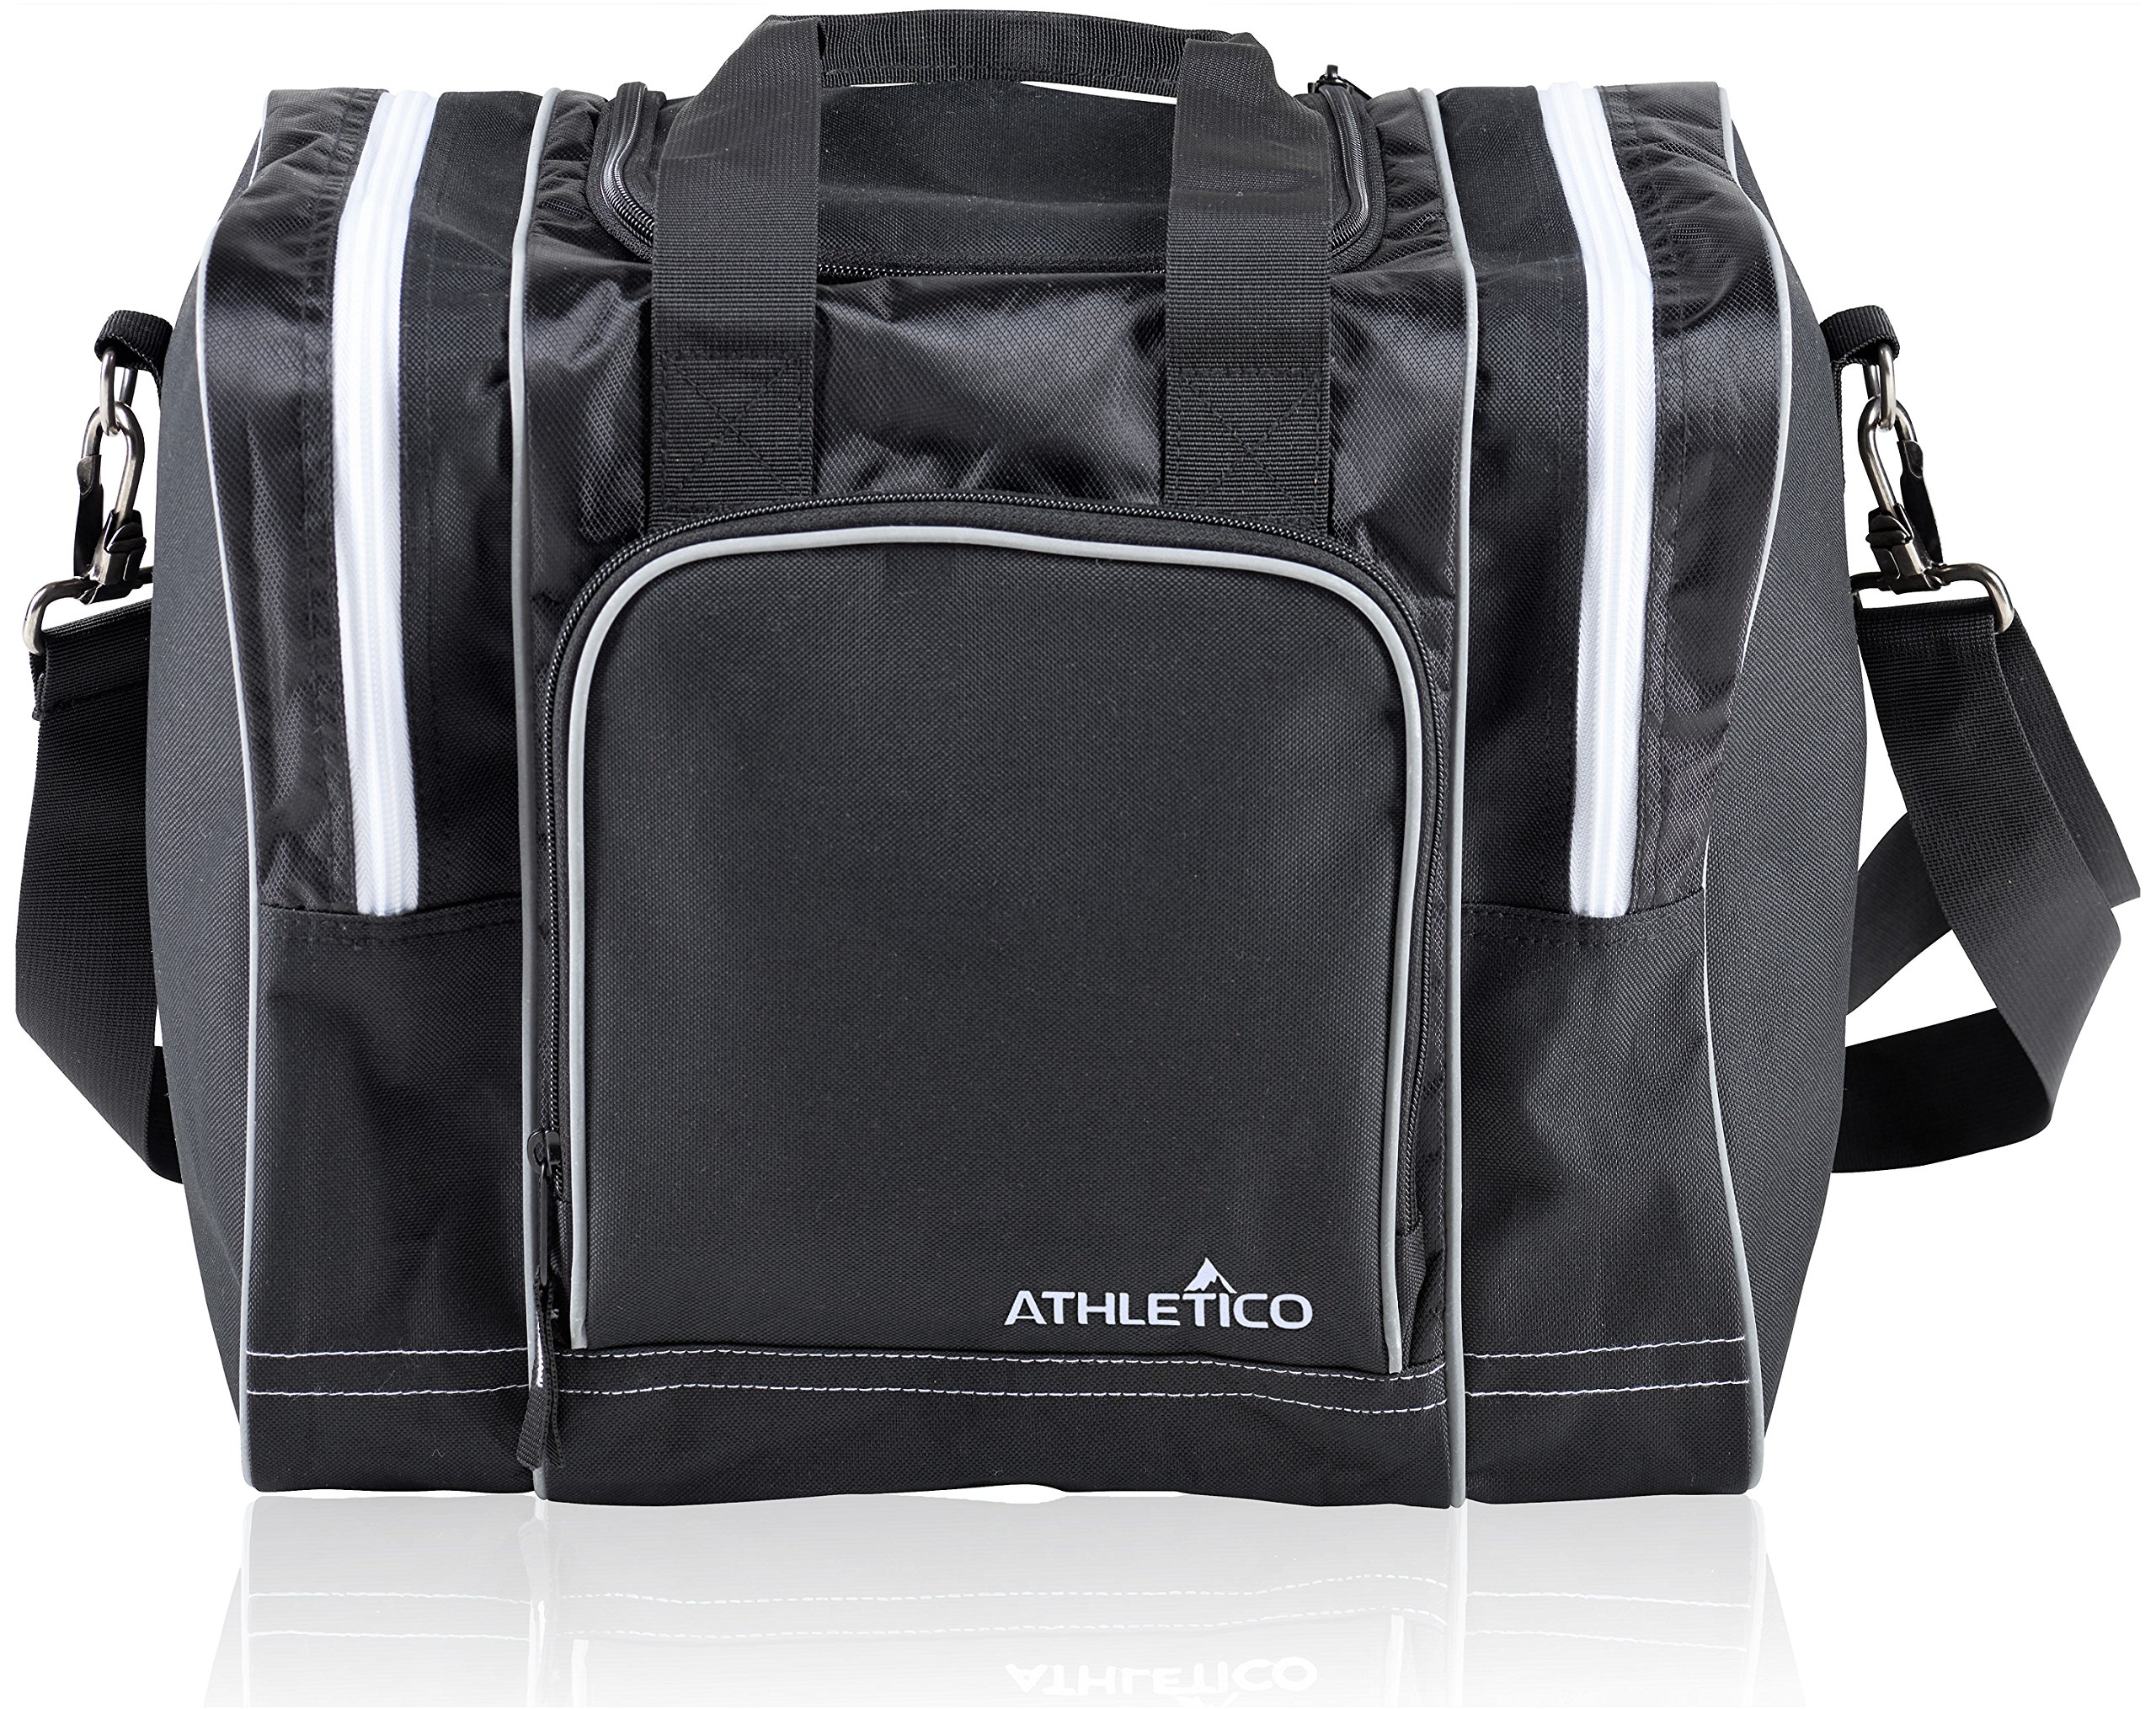 Athletico Bowling Bag for Single Ball - Single Ball Tote Bag with Padded Ball Holder - Fits a Single Pair of Bowling Shoes Up to Mens Size 14 (Black) by Athletico